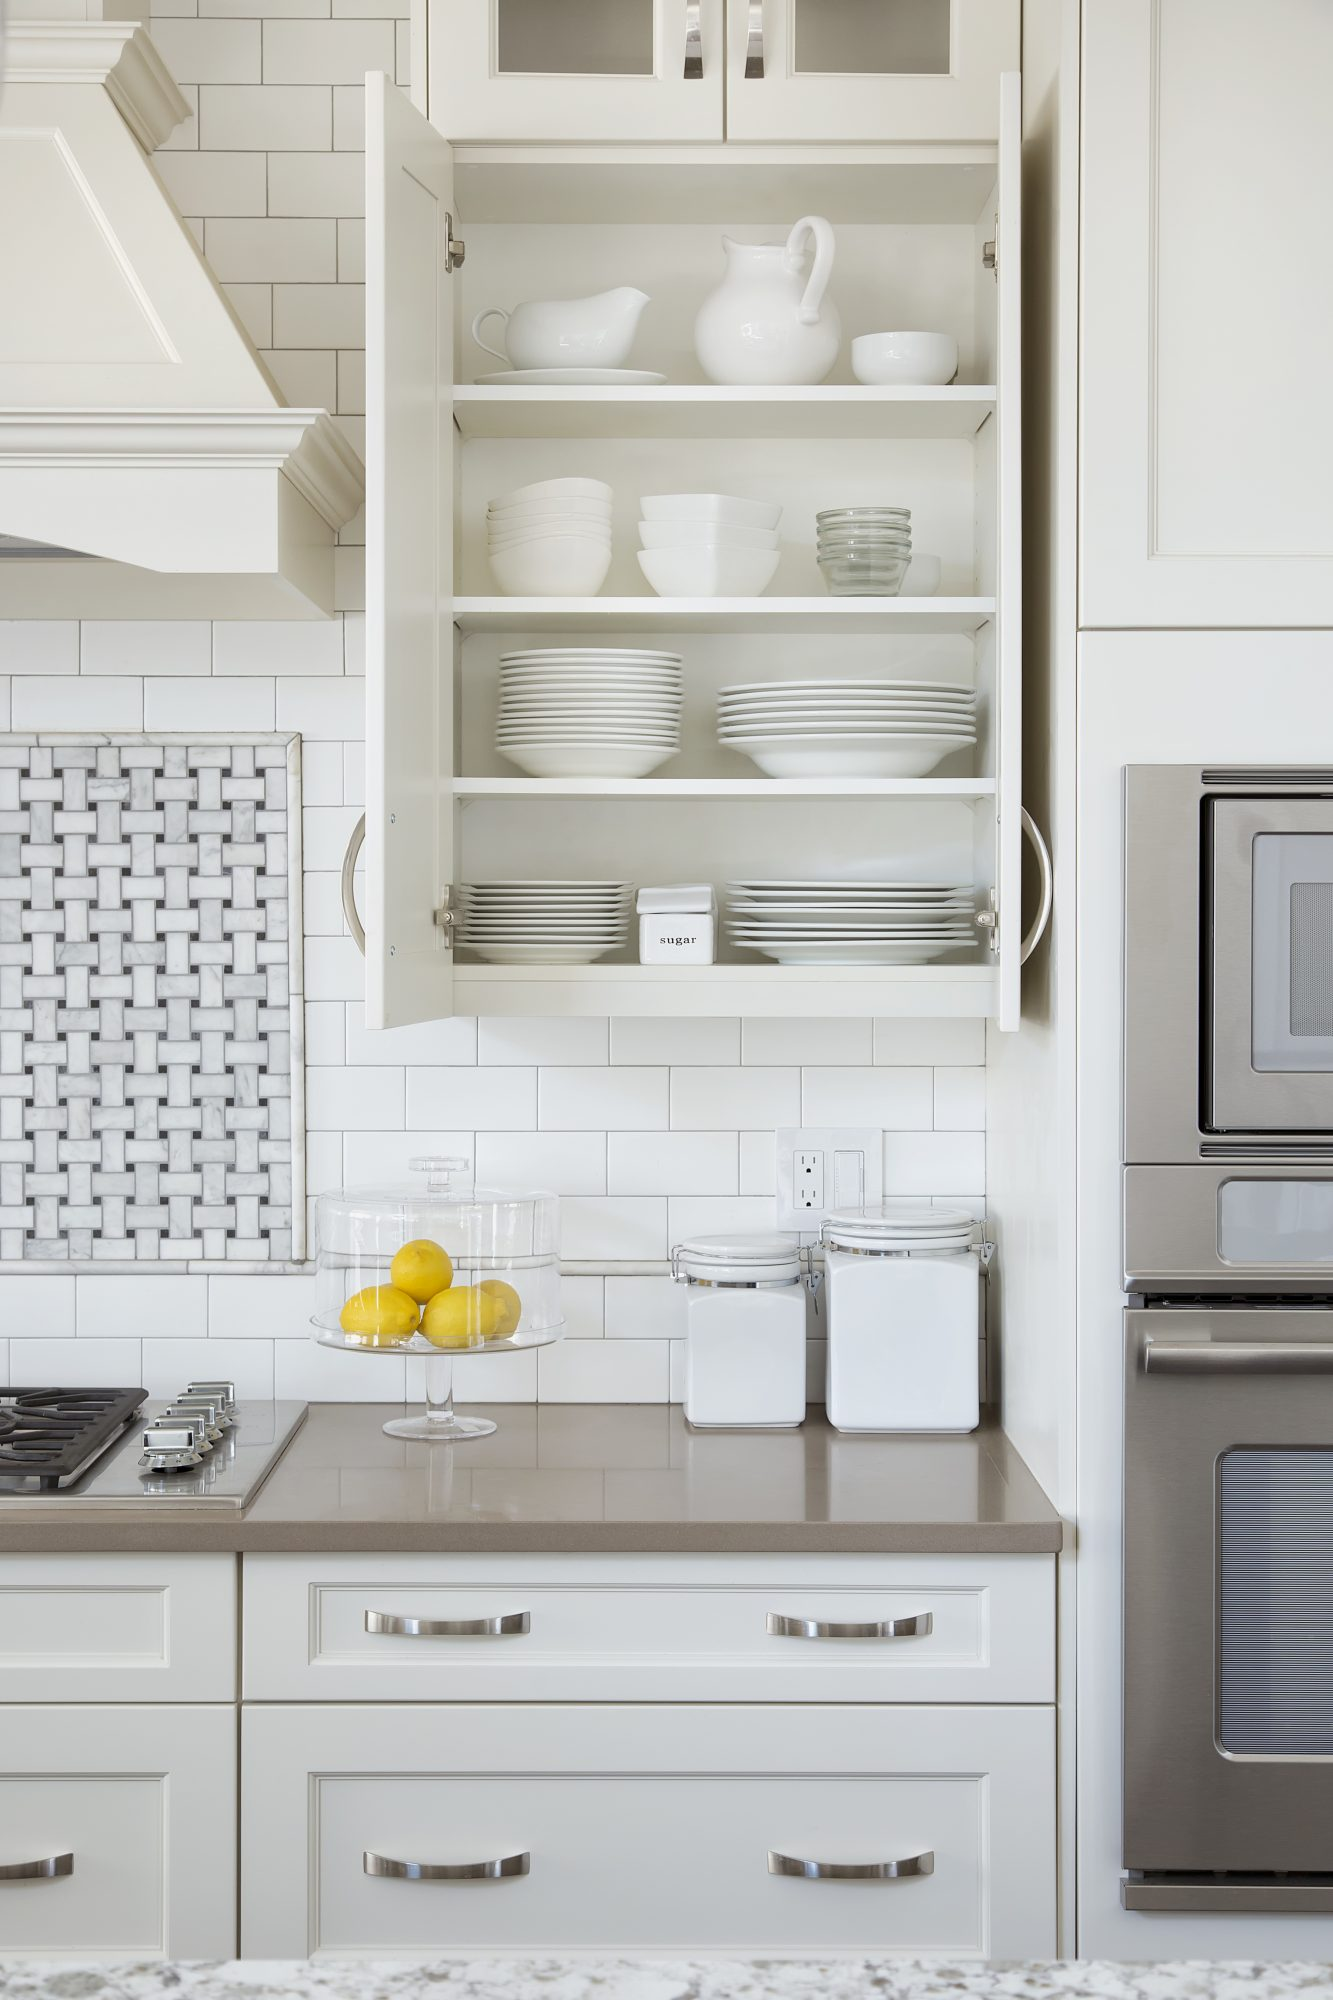 Pin On A Modular Kitchen: 24 Smart Organizing Ideas For Your Kitchen